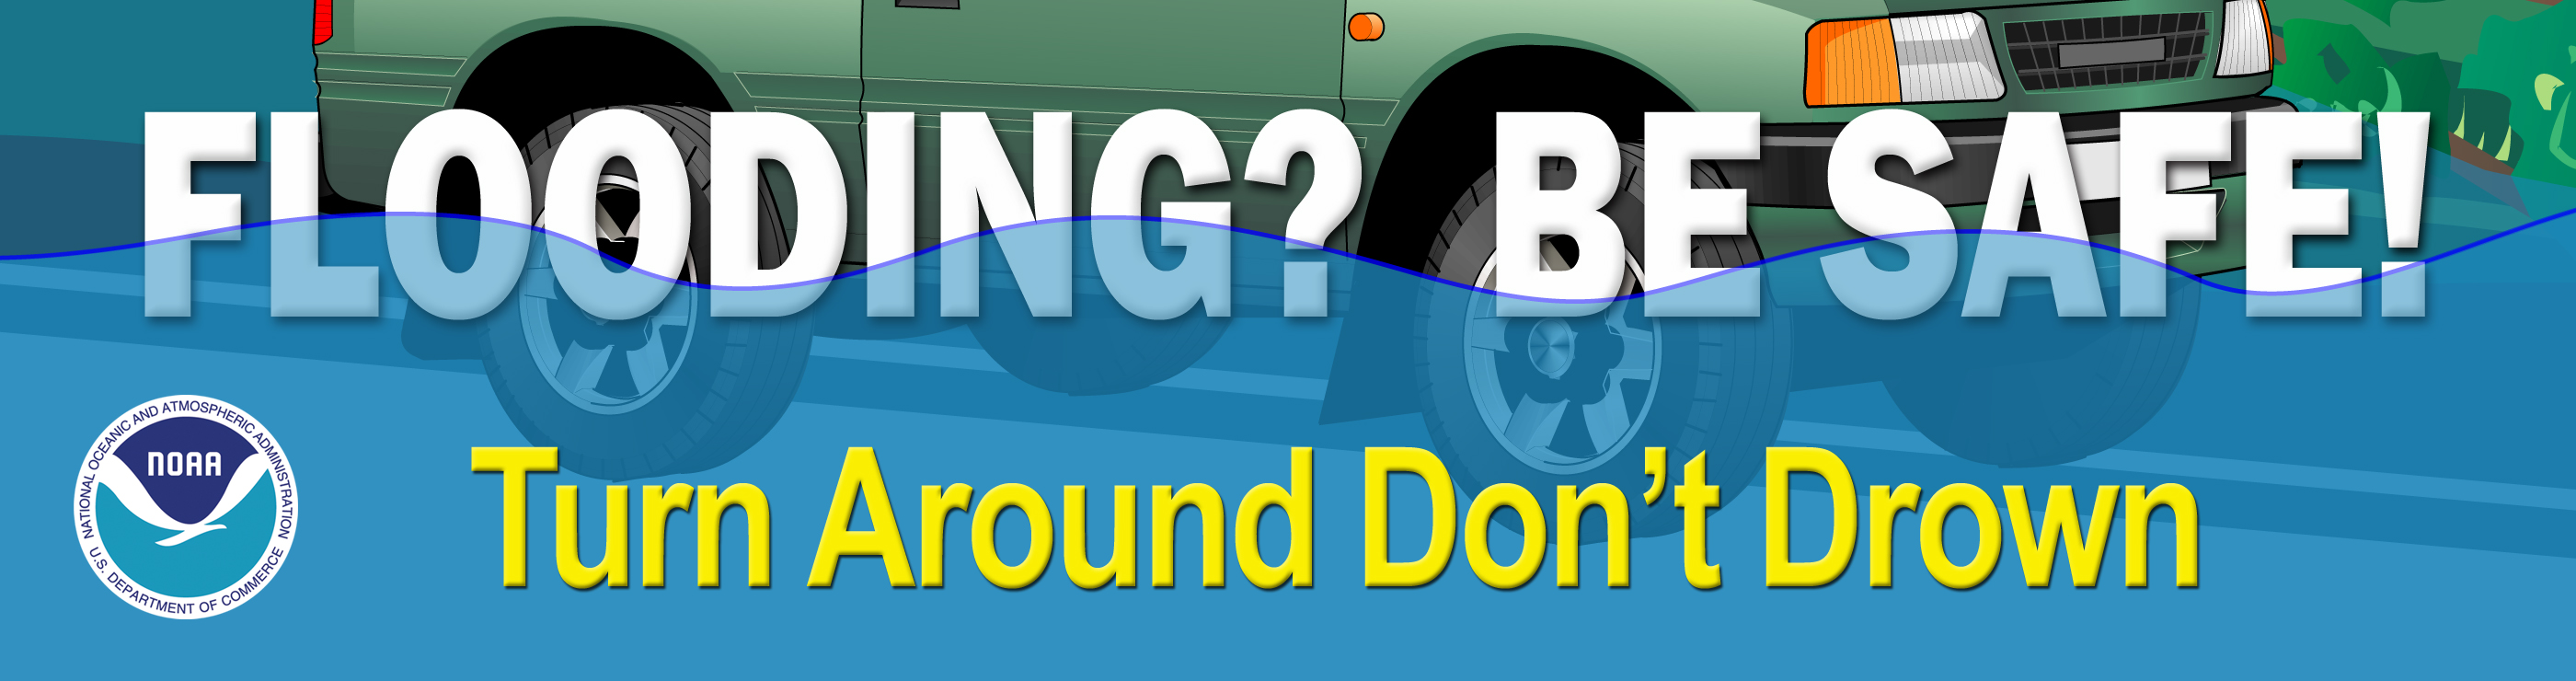 Turn Around Don't Drown flood saftey image